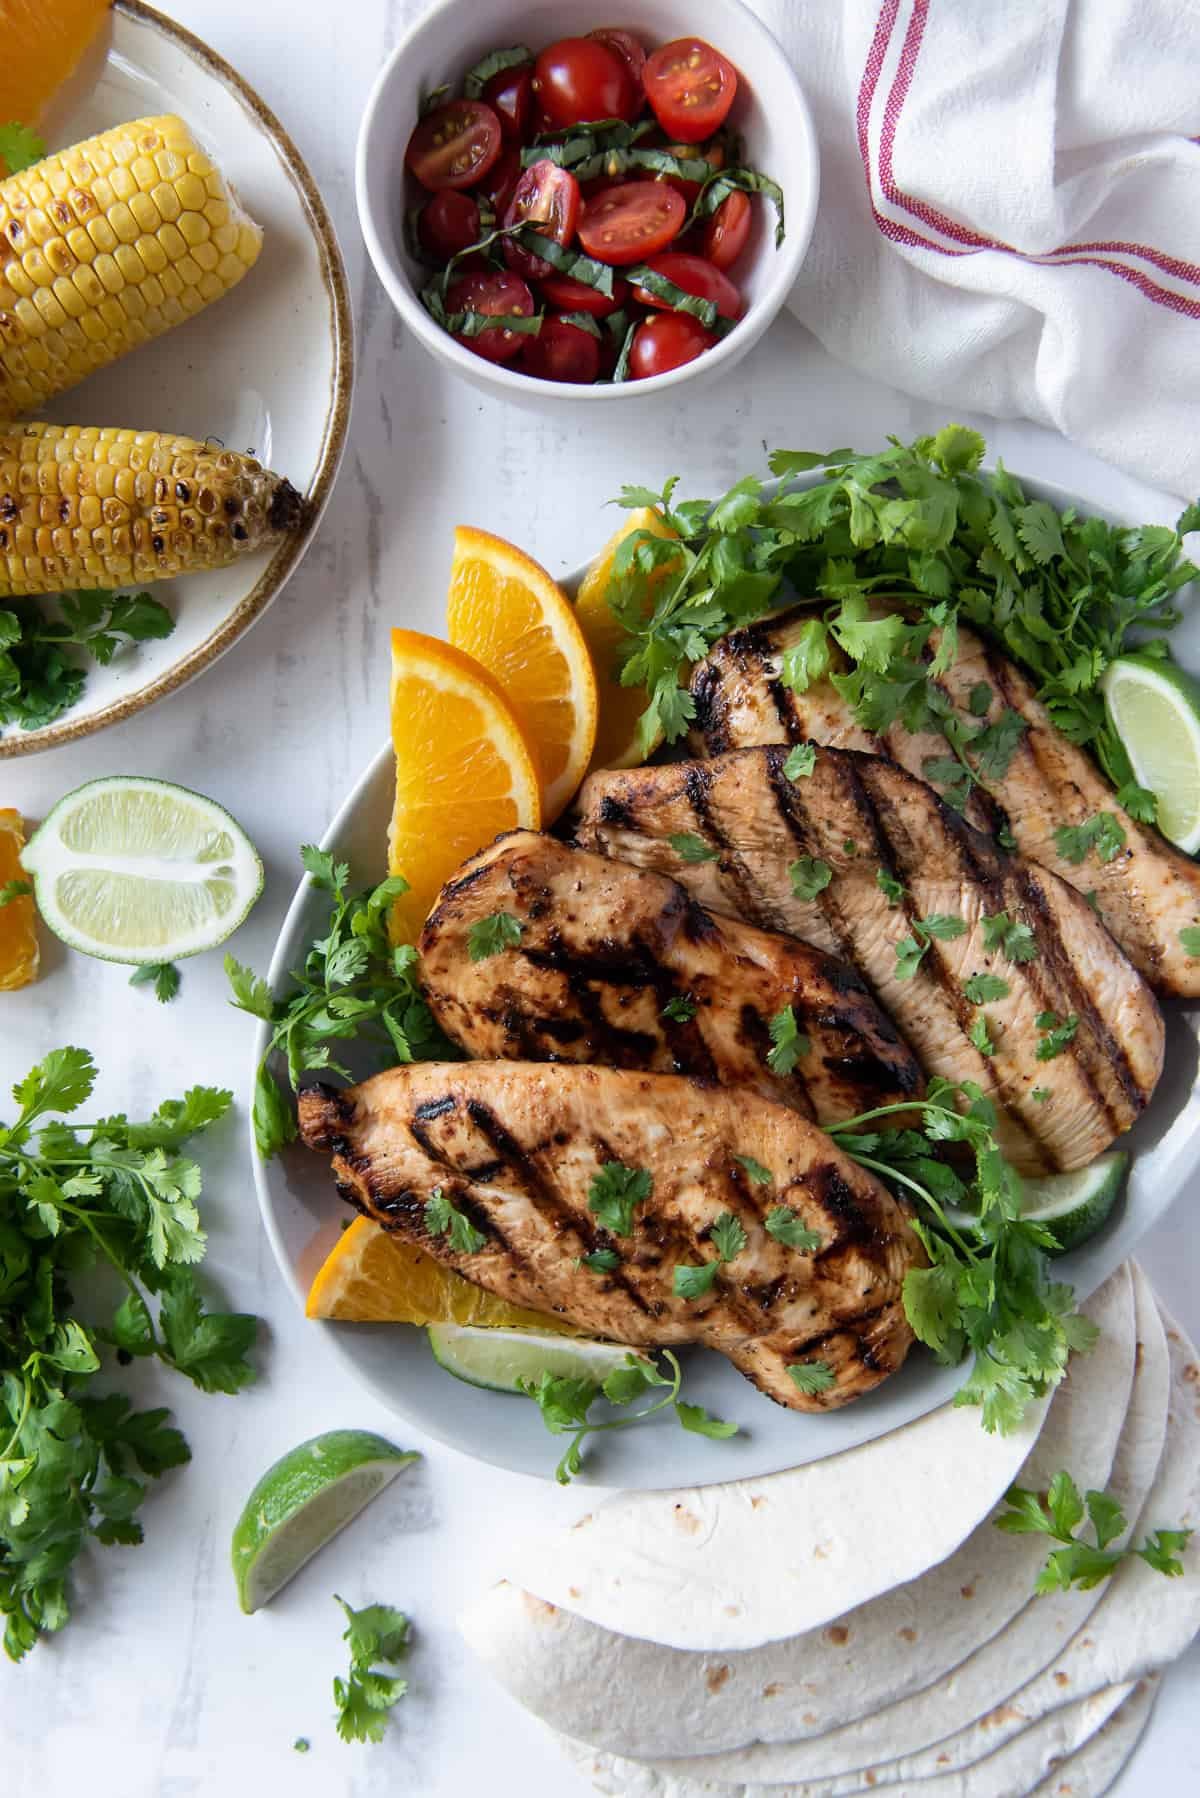 A platter of grilled chicken with cilantro and oranges shot from over the top.